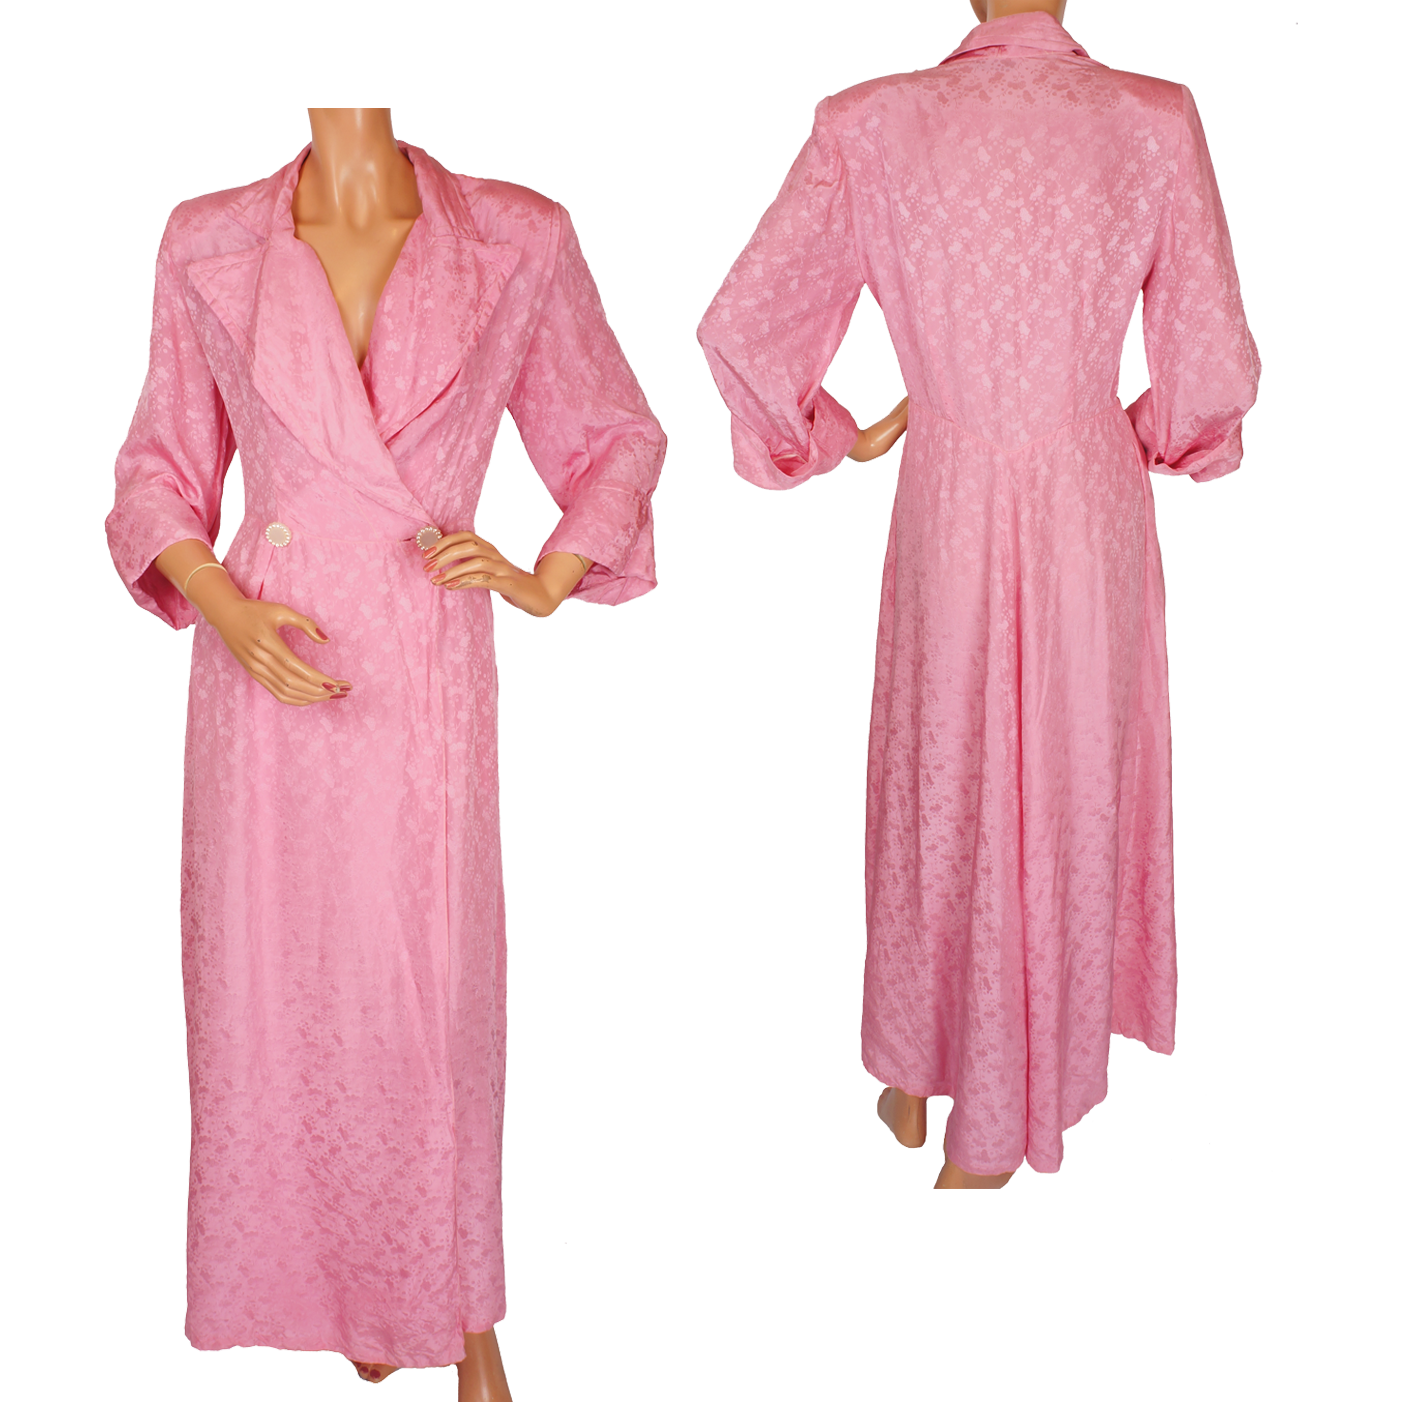 Satin Dressing Gown: Vintage Pink Silk Dressing Gown 1950s Robe Or Hostess